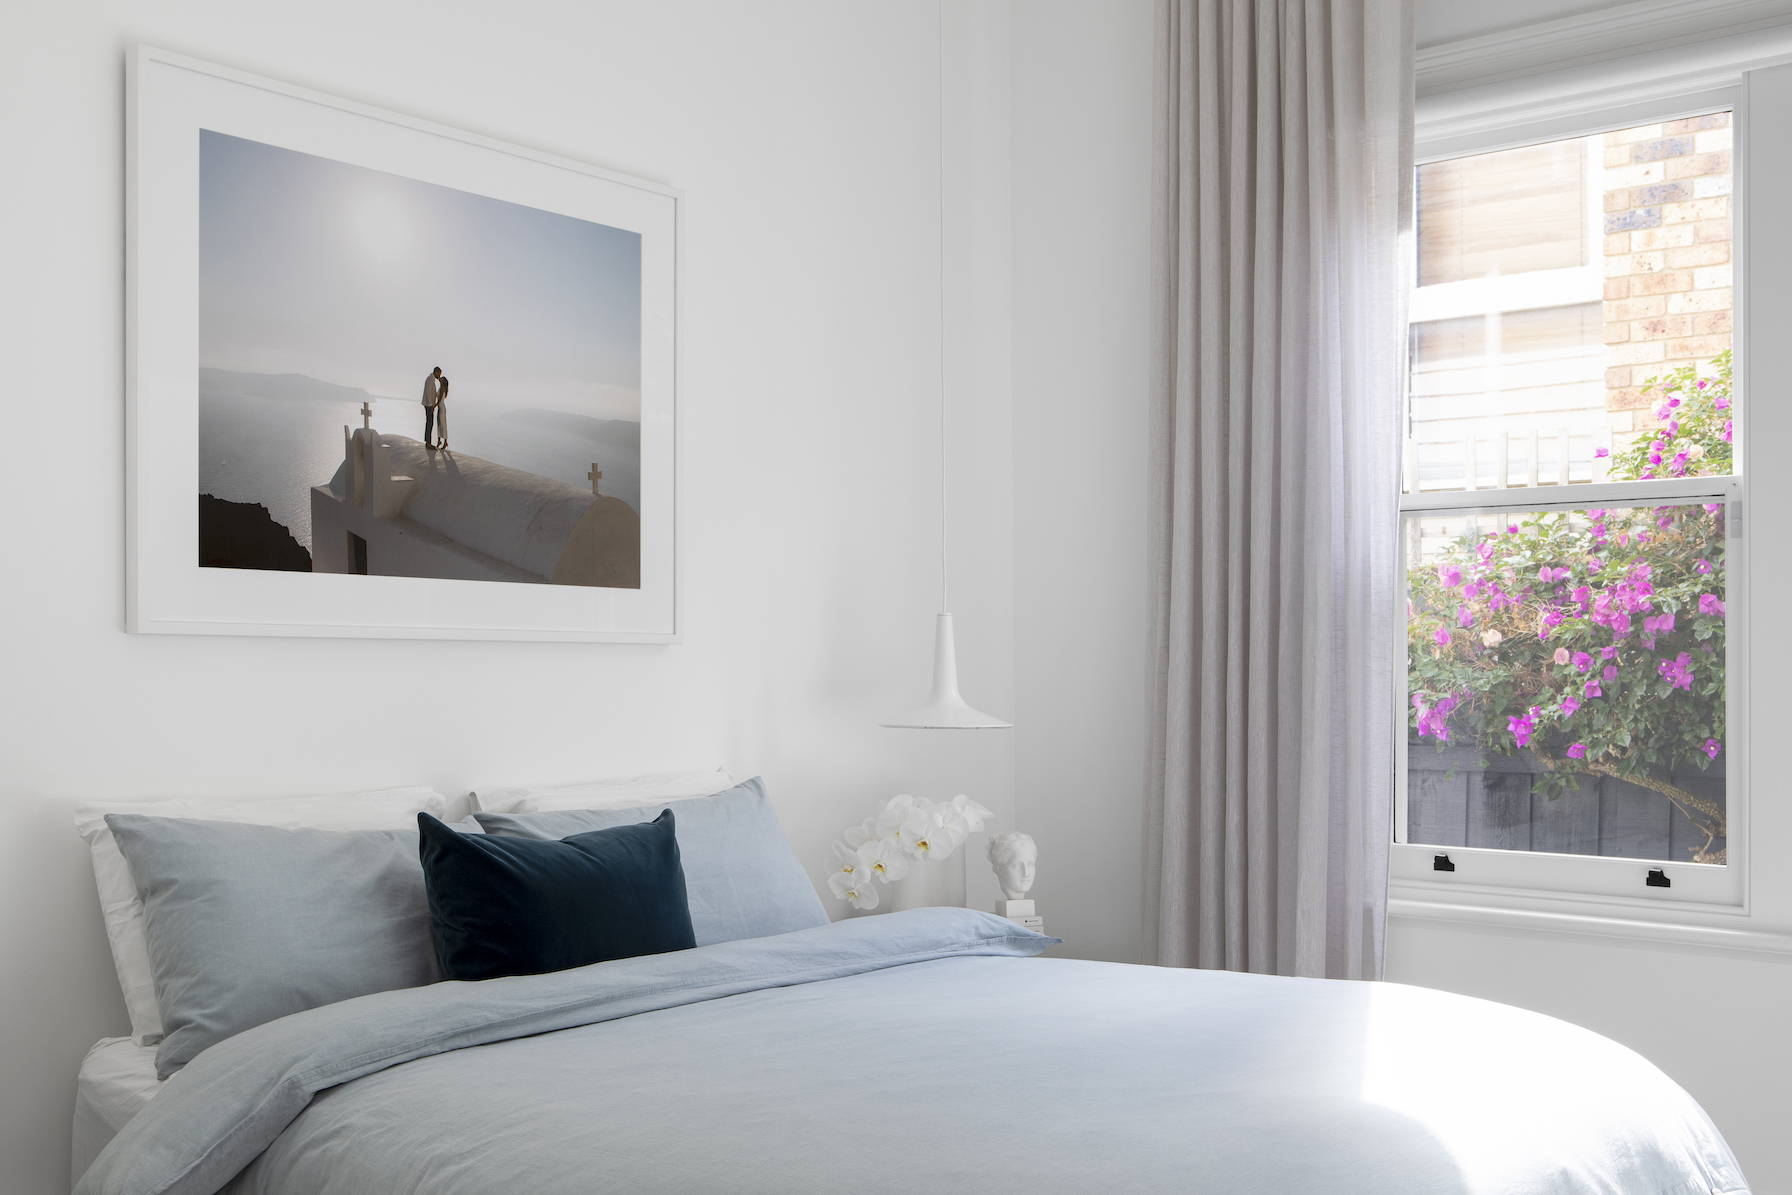 Wedding photography framed and hanging above a bed, the image shows flowering bougainvillea outside the window